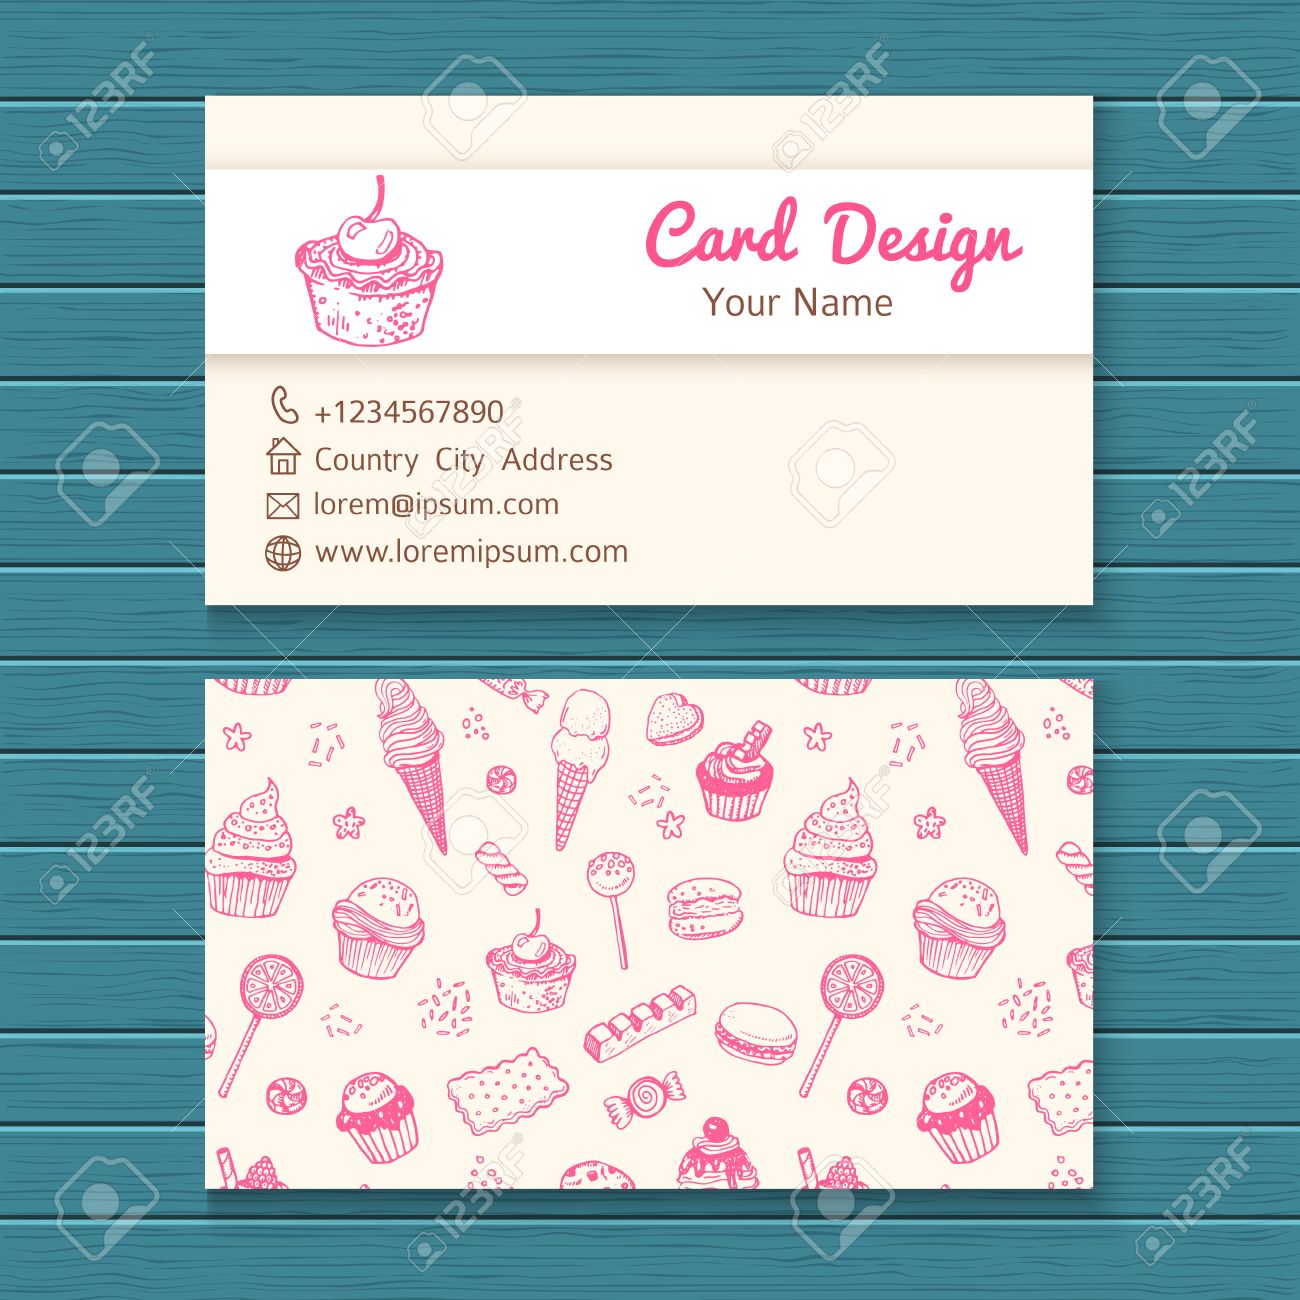 business card template with hand drawn sweets set royalty free